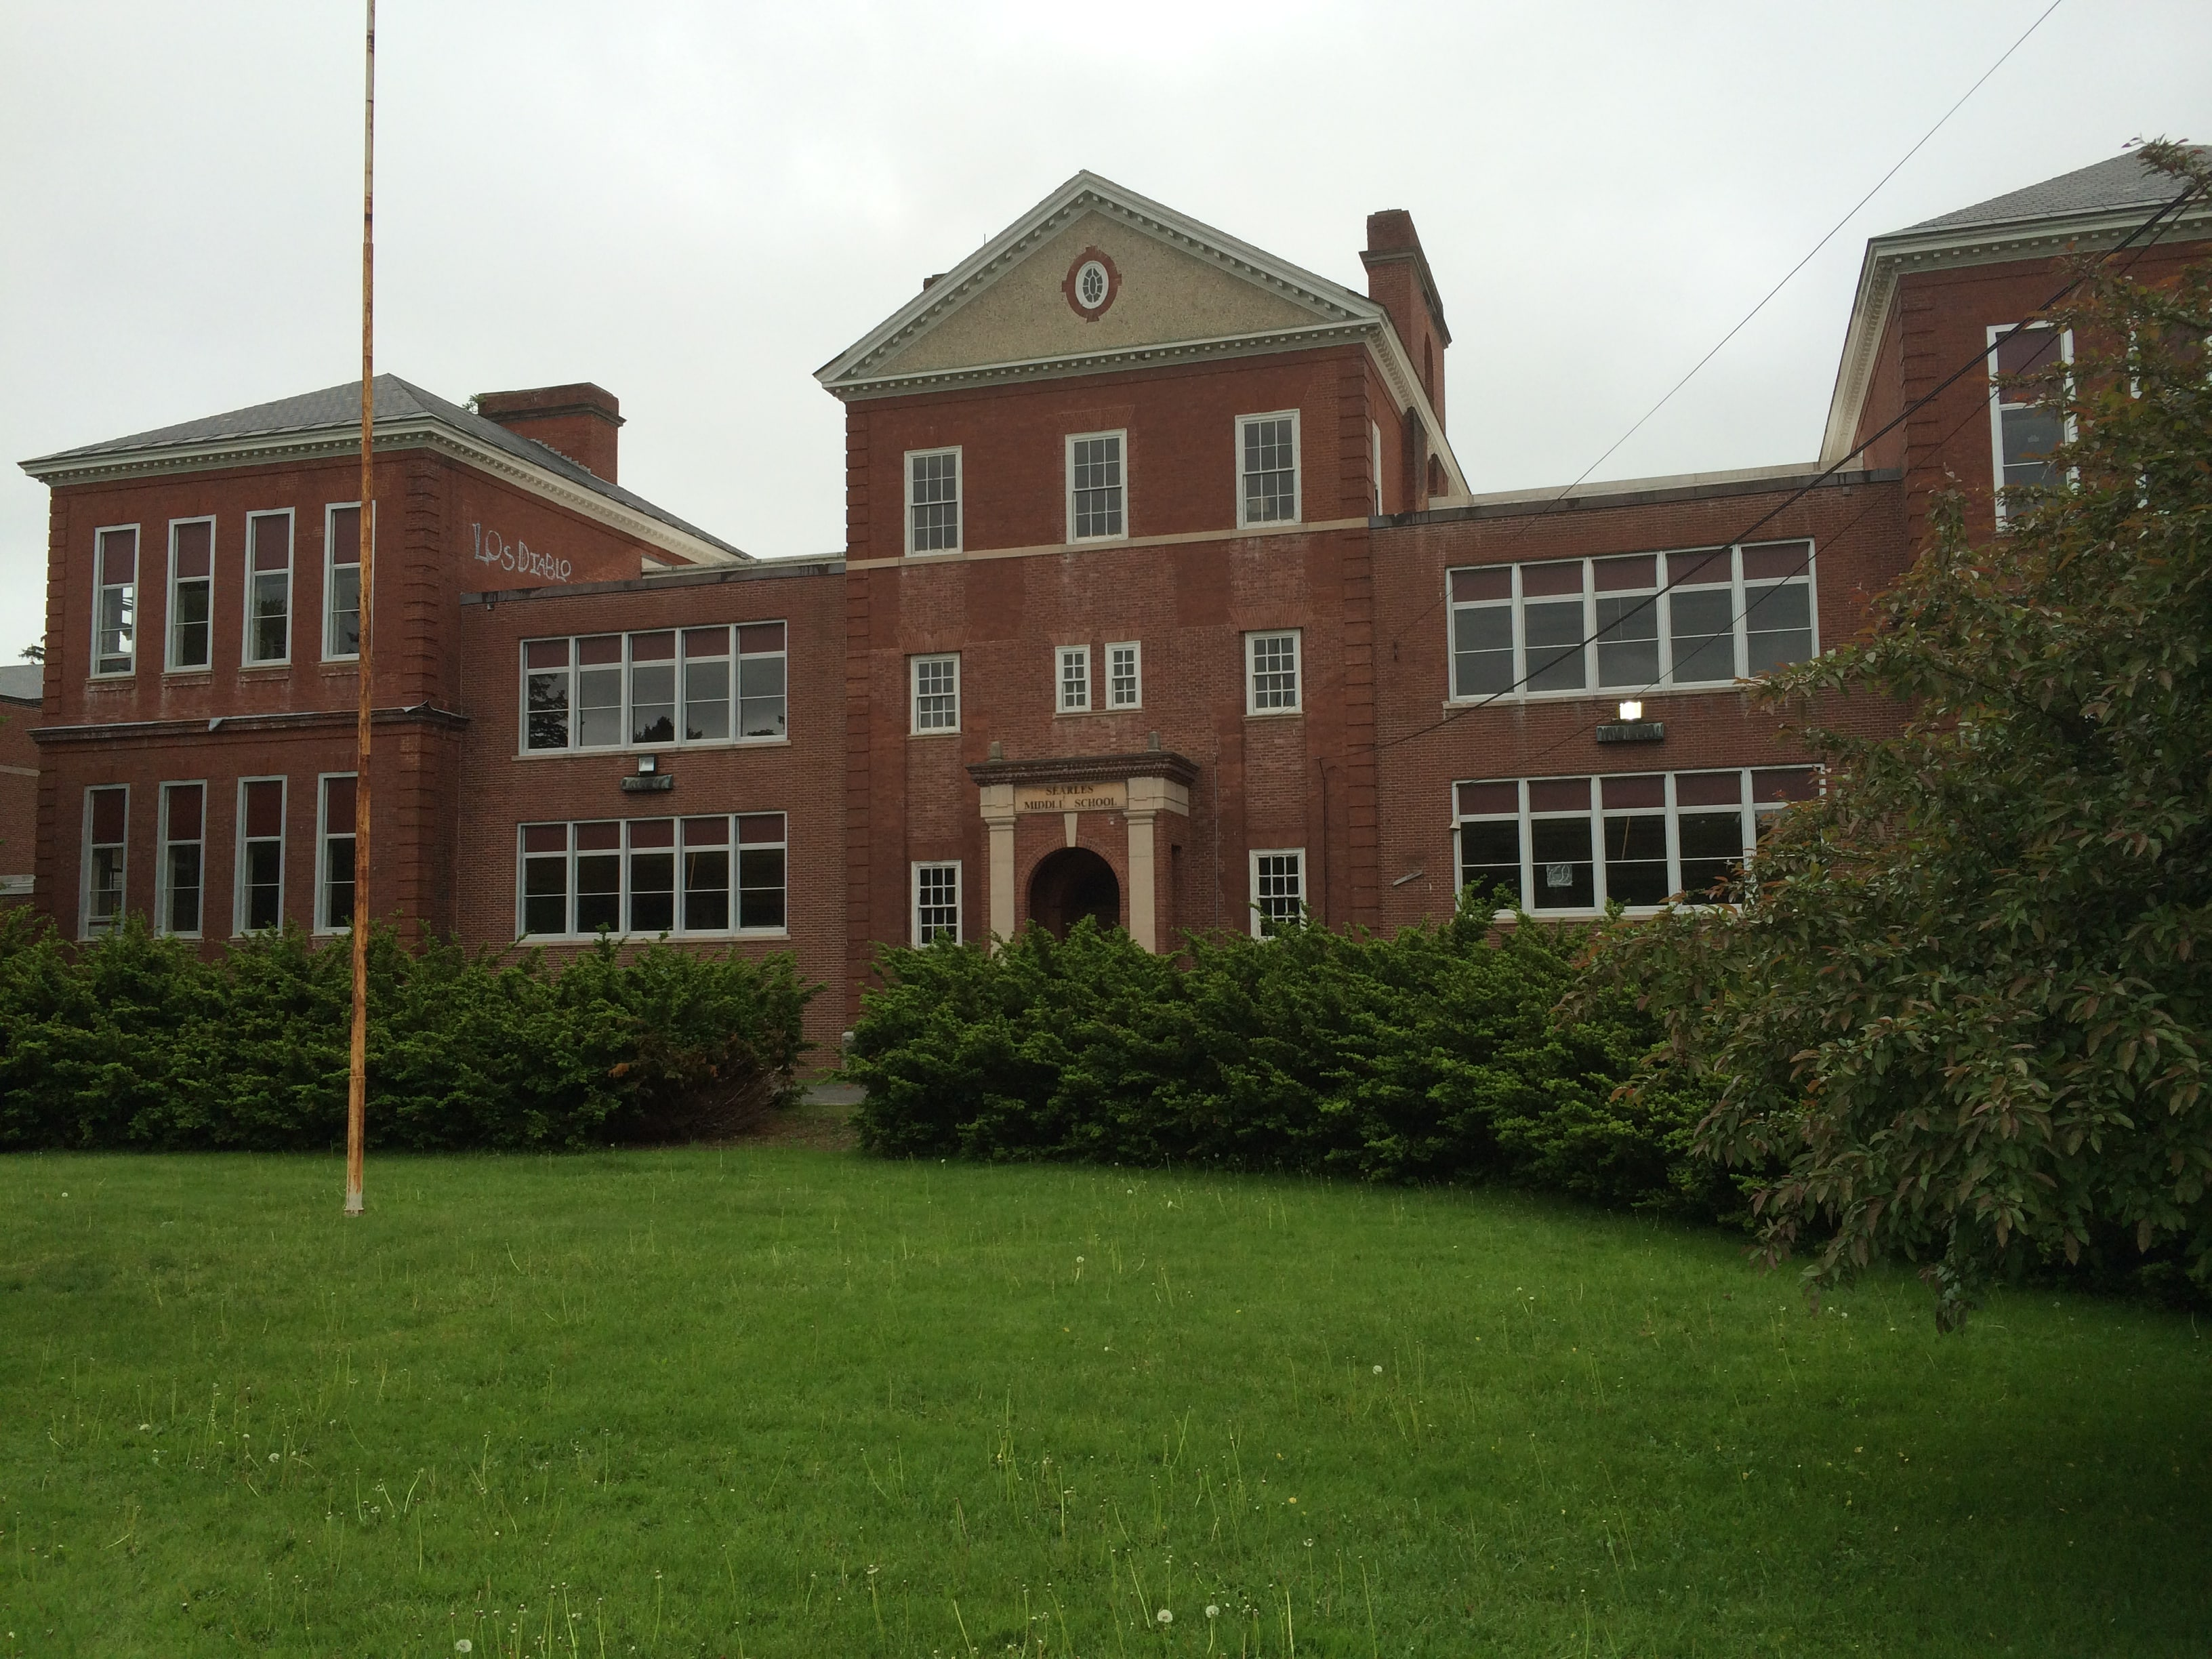 The former Searles School as it appears today, from Bridge Street.